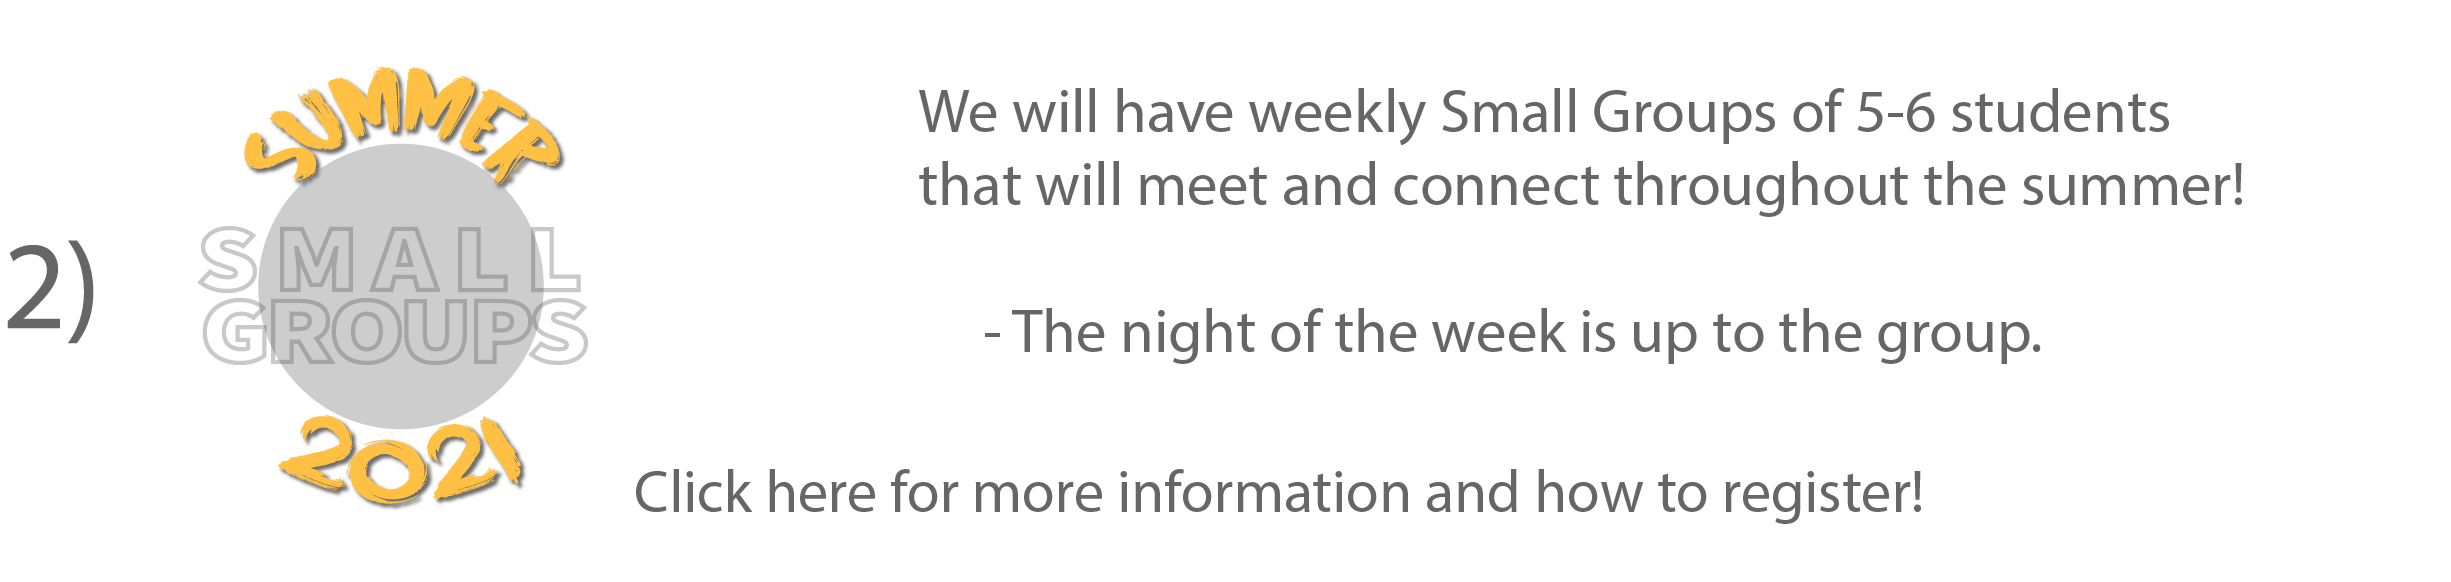 Small Group Info-08